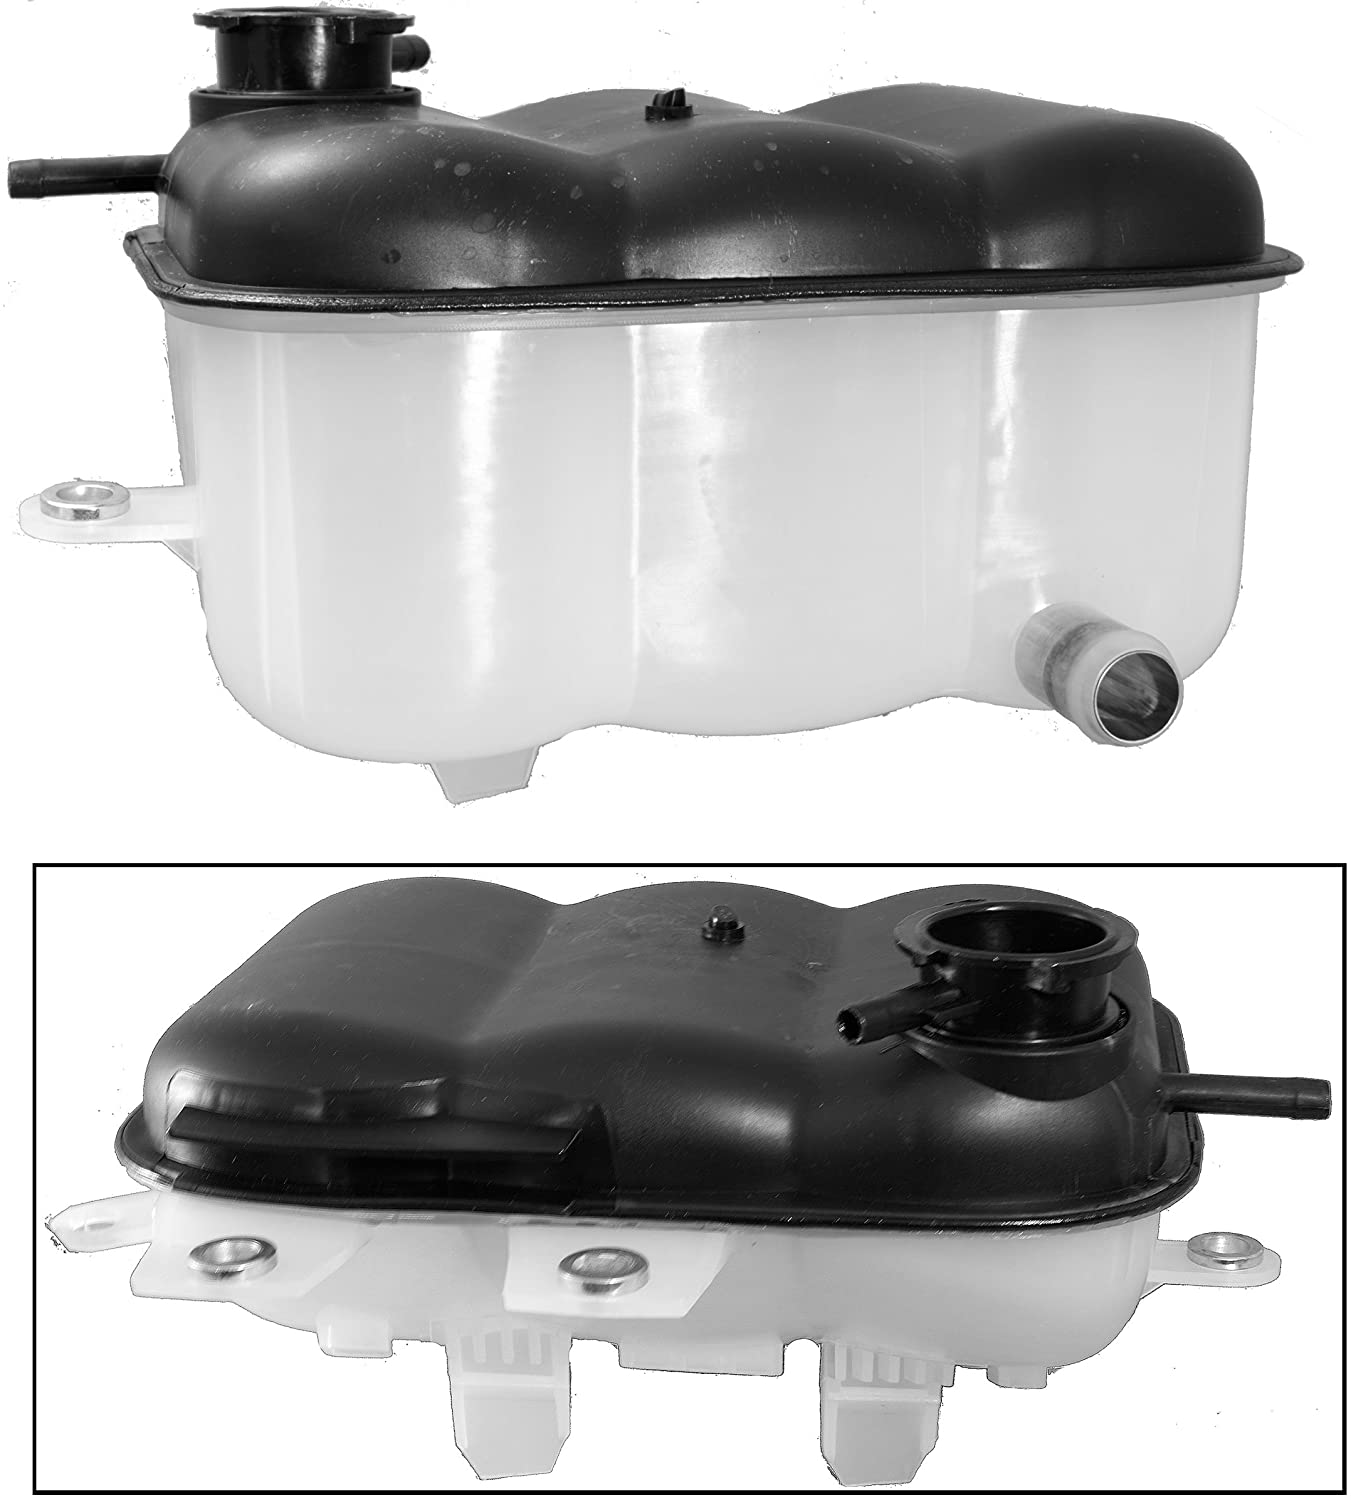 APDTY 5072602AB Replacement Coolant Fluid Reservoir Plastic Bottle Replacement For 2002-2003 Dodge Ram 1500 Pickup 2003 Ram 2500 3500 (Gasoline Engines; Replaces 5072602AB, 05072602AB, 5072602AA)